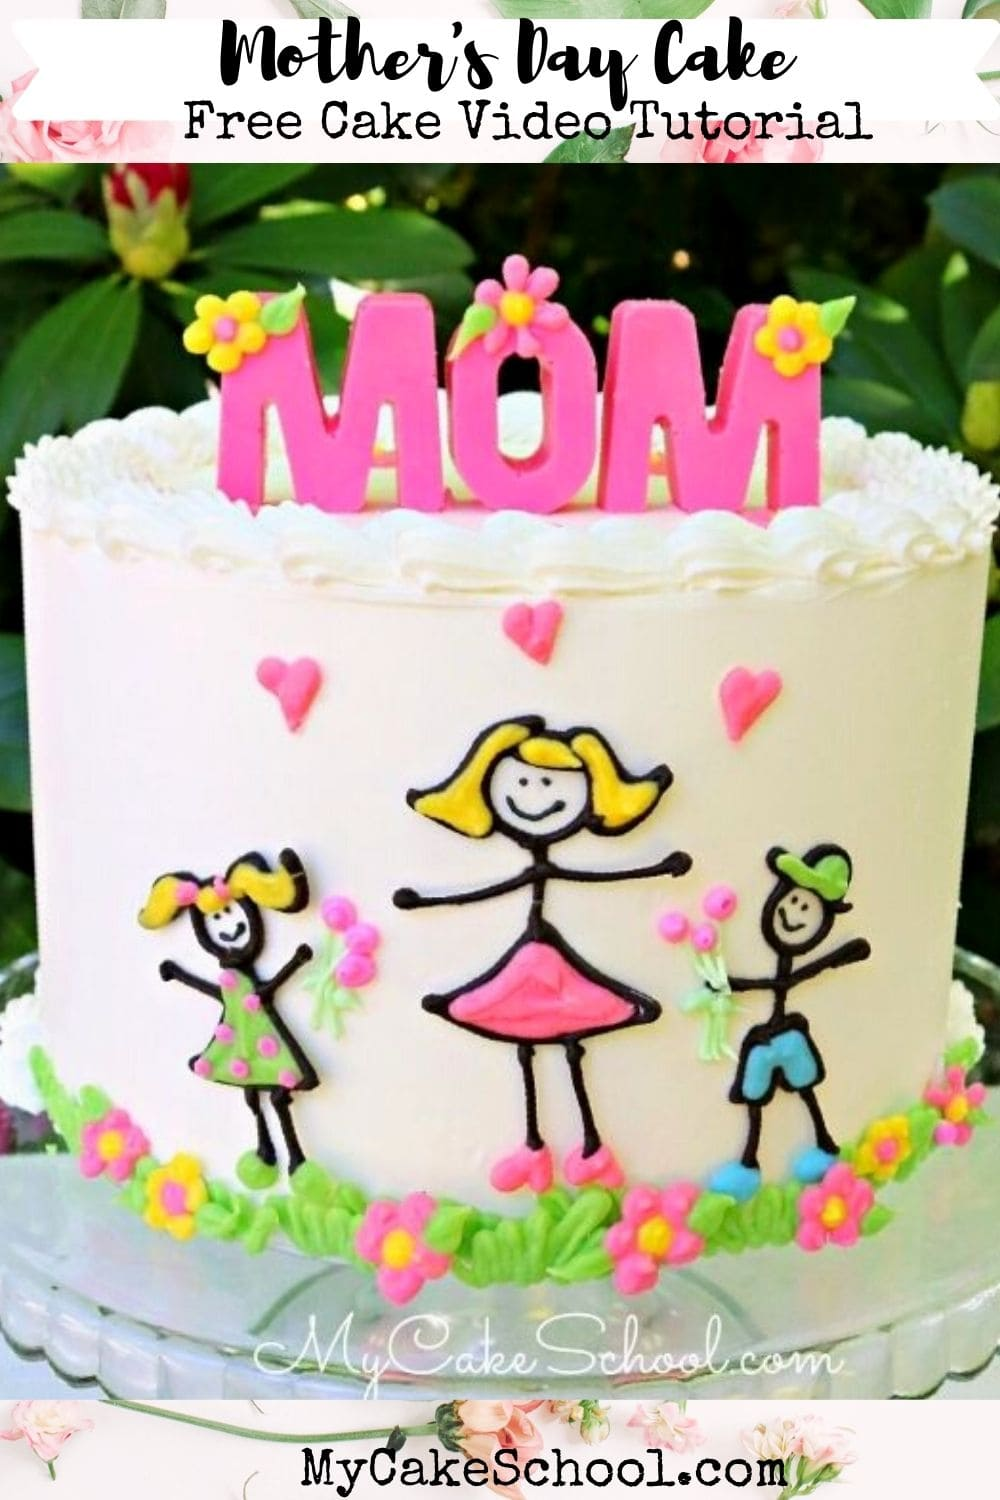 Cute and Easy Stick Figures Mother's Day Cake- Free Cake Video Tutorial